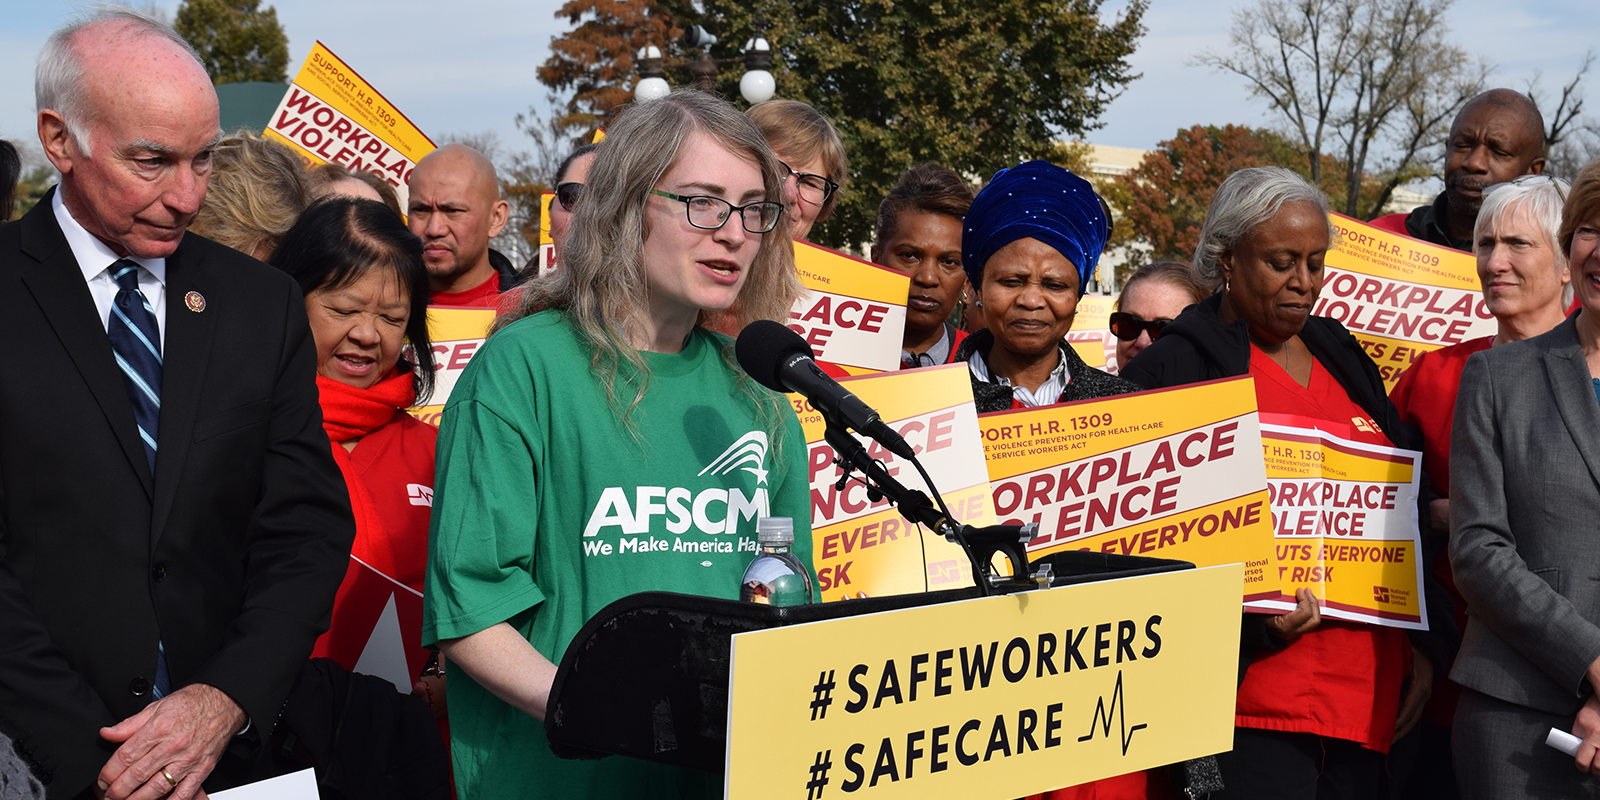 AFSCME member and social worker Miriam Doyle speaks at rally with Rep. Joe Courtney